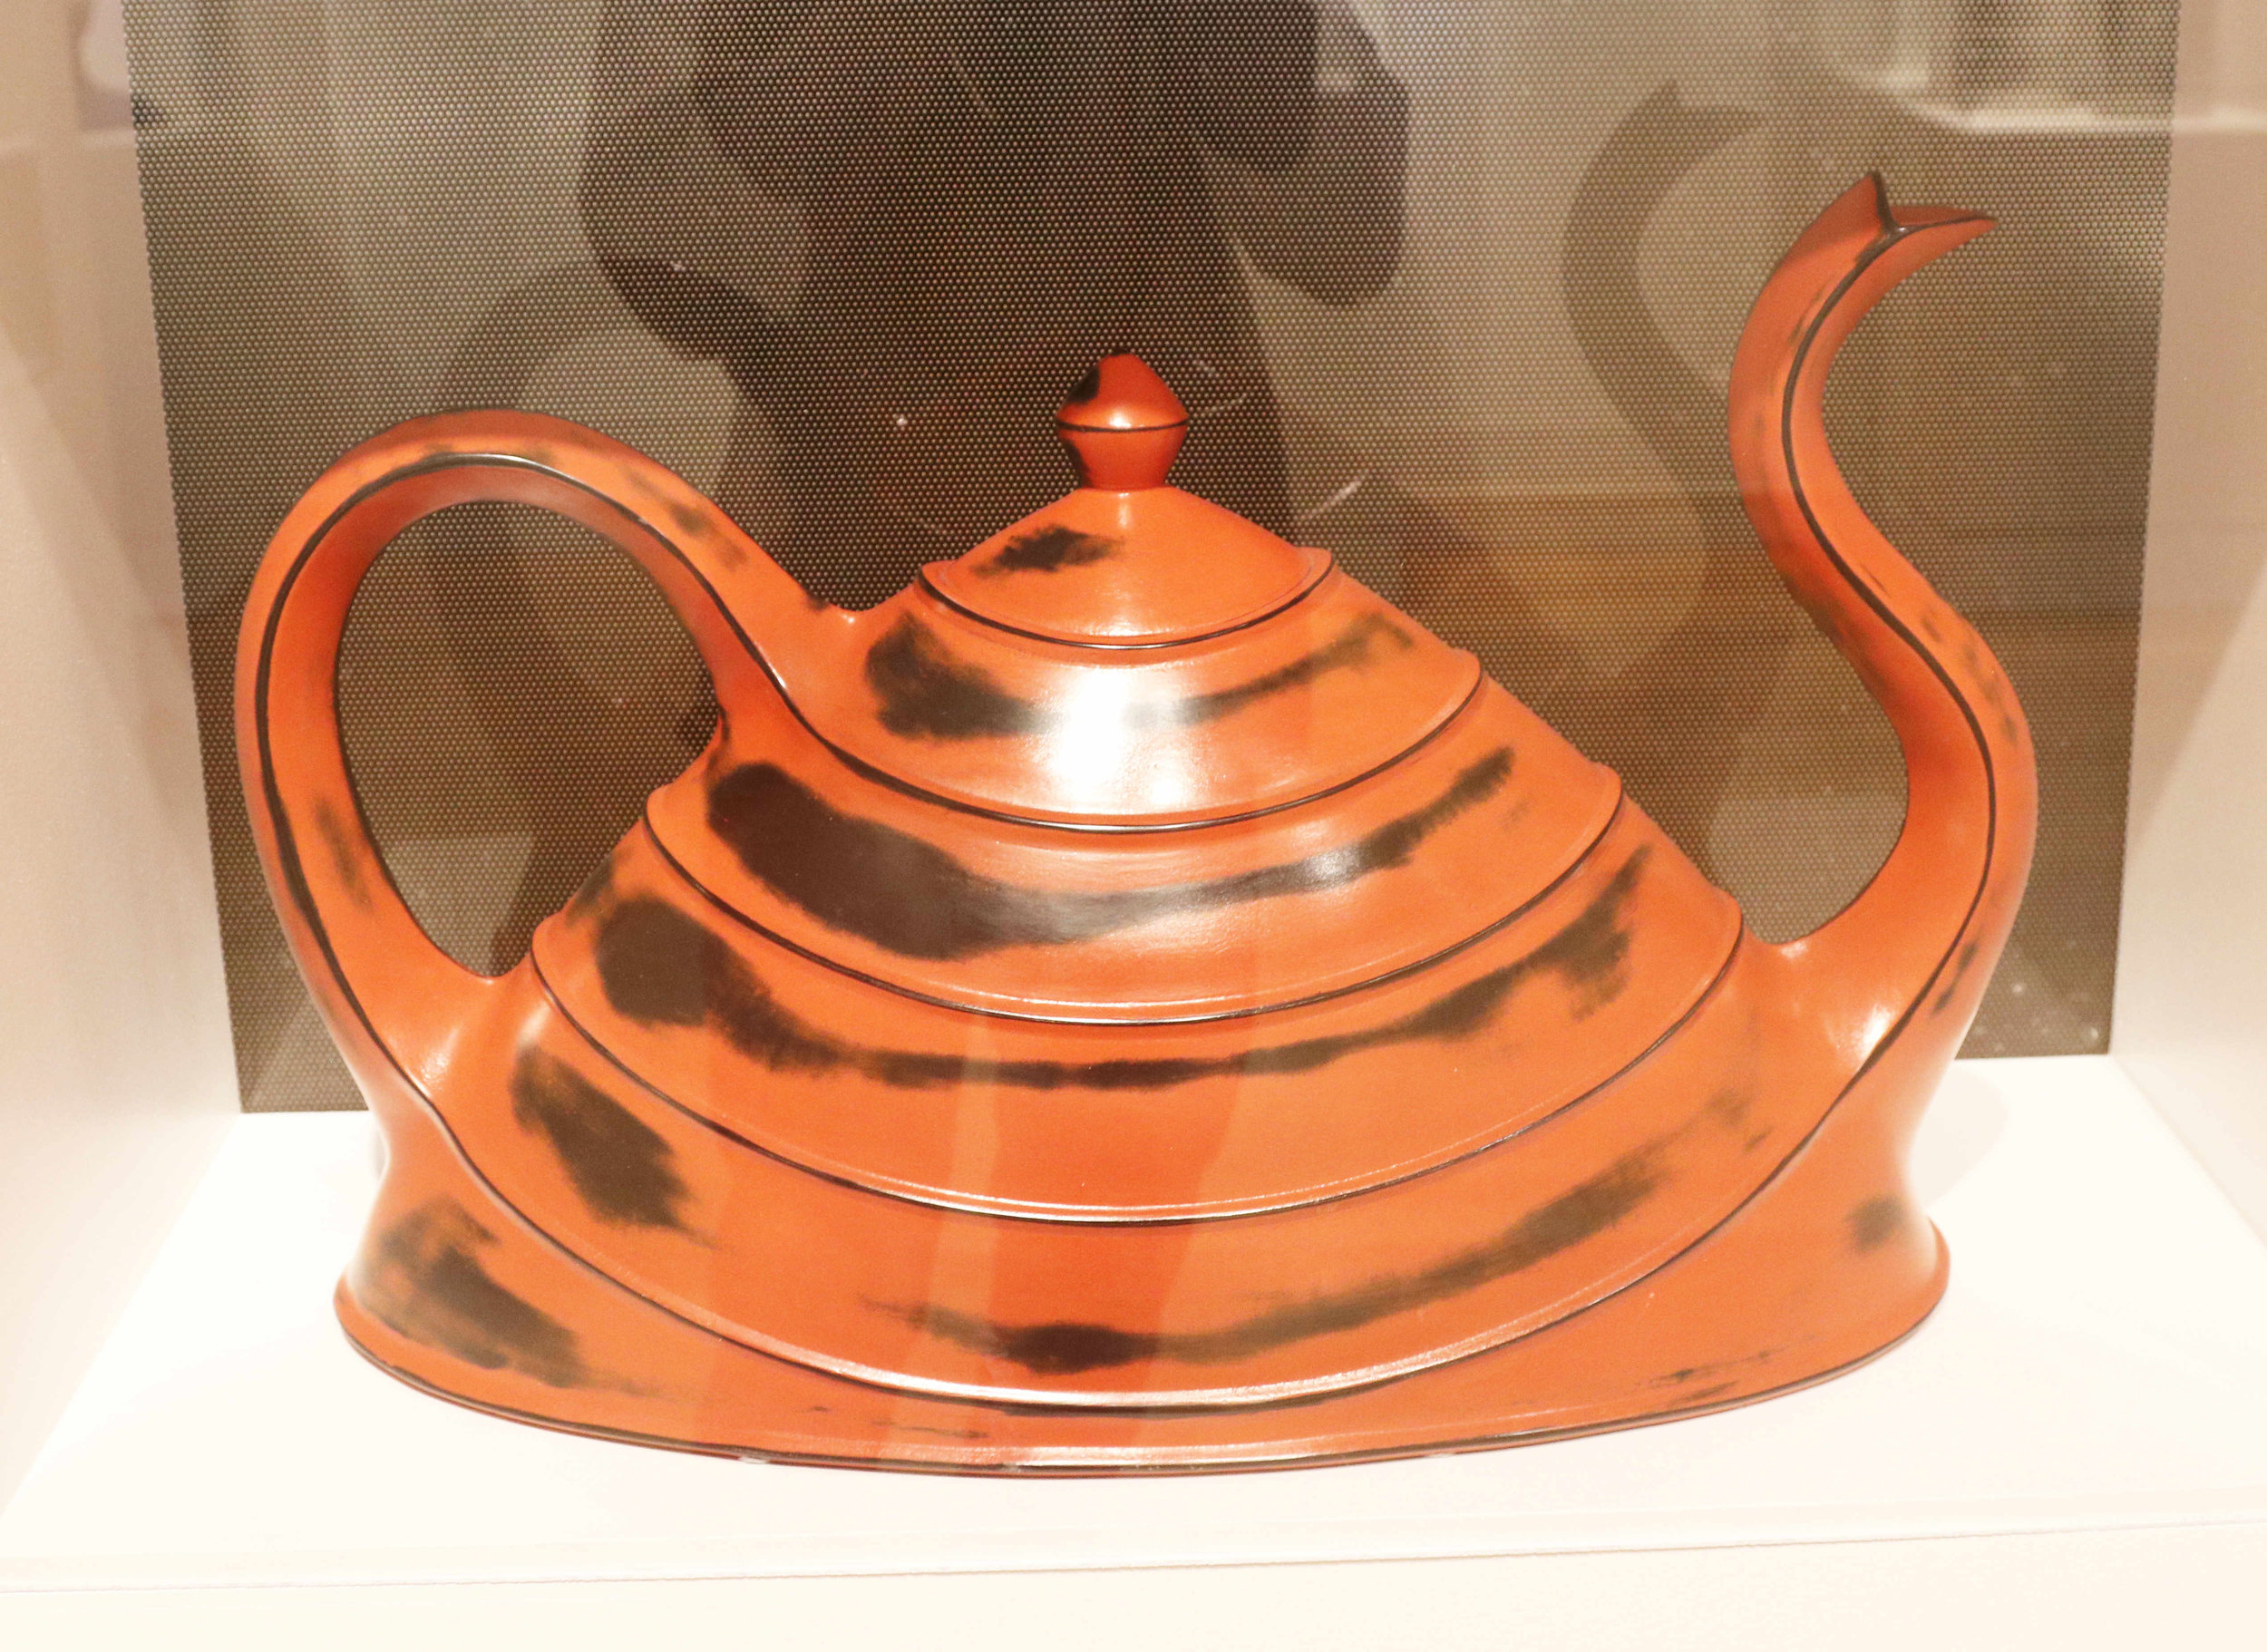 Michael Sherrill, Red Lacquer Teapot, 1997. Ceramic.